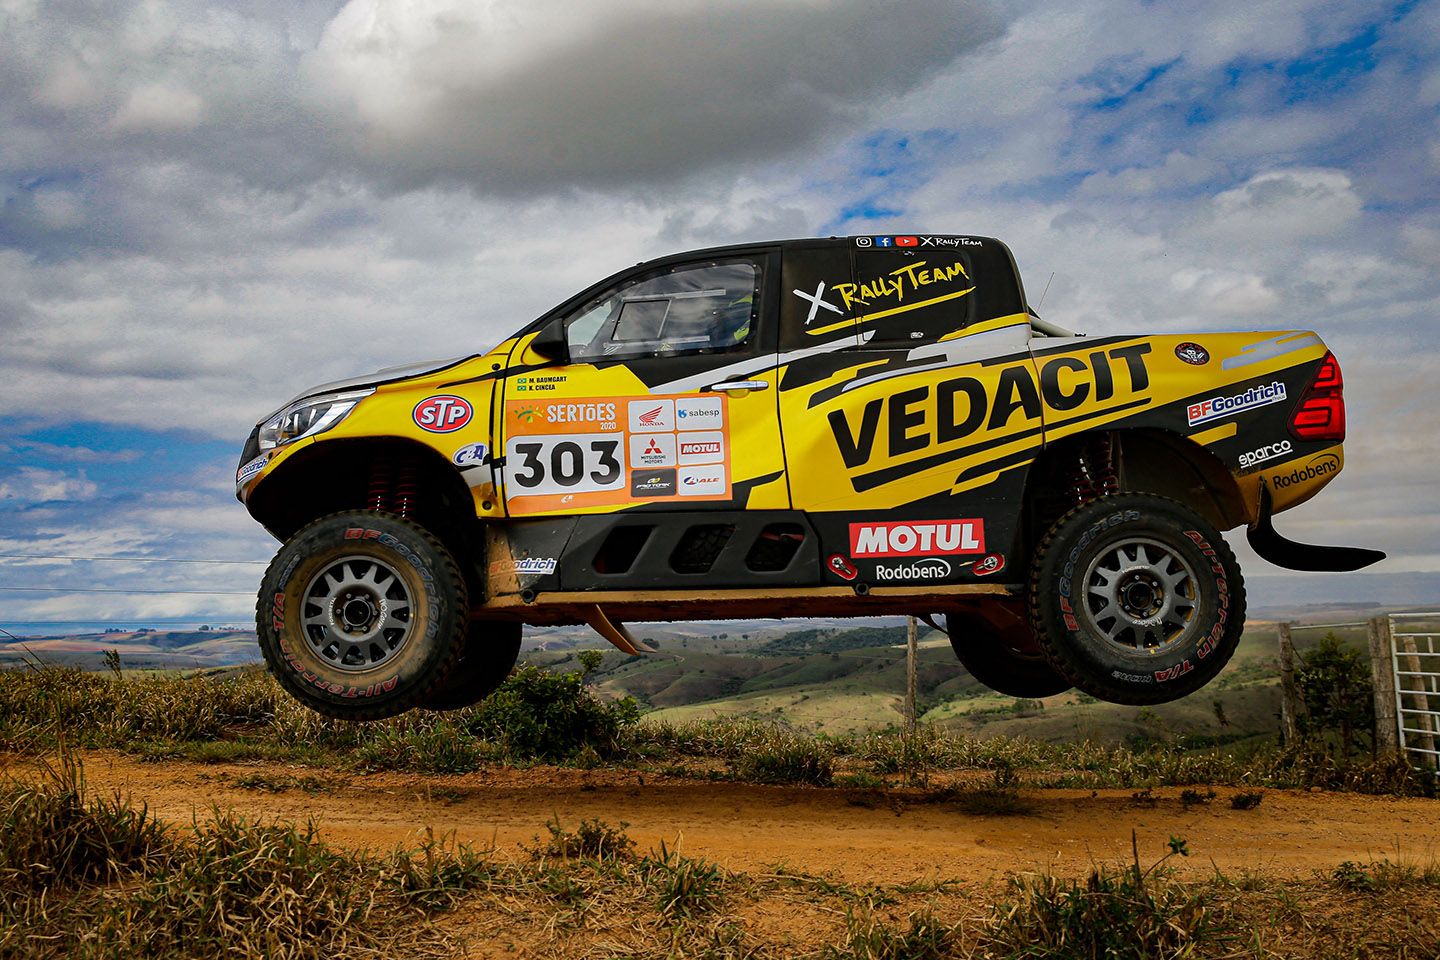 X Family Rally Team wins again in Sertões